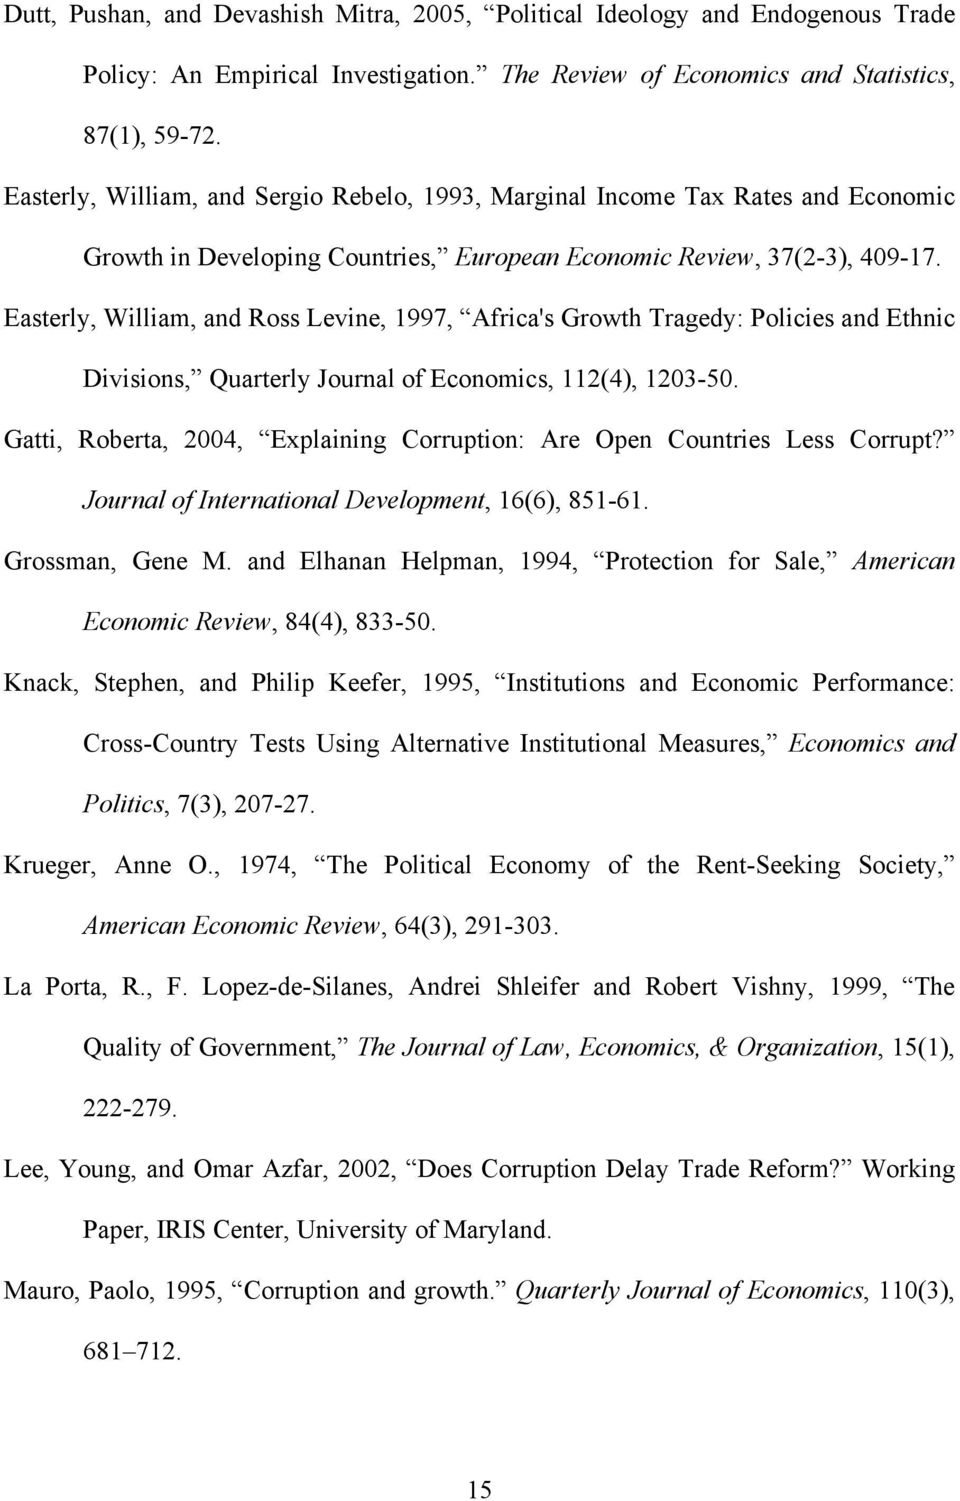 corruption research paper Bigger governments raise the possibilities for corruption corruption, inequality and fairness (april 29 of economic research discussion paper no.